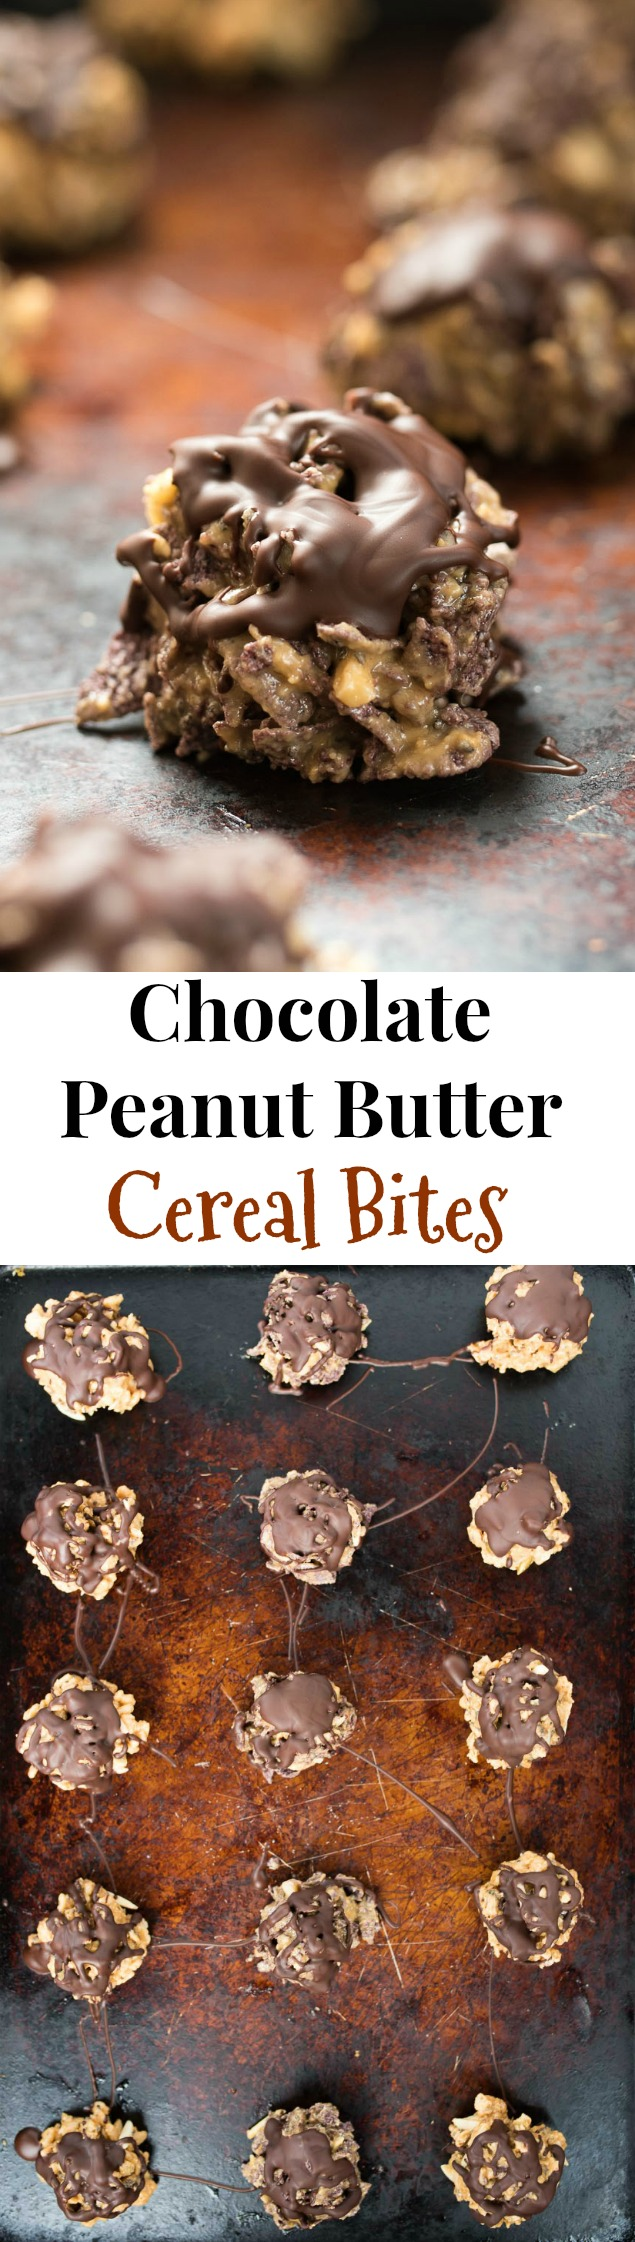 Chocolate Peanut Butter Cereal Bites- simple and nutritious cereal bites great for that sweet tooth or kid-friendly treat! | www.nutritiouseats.com